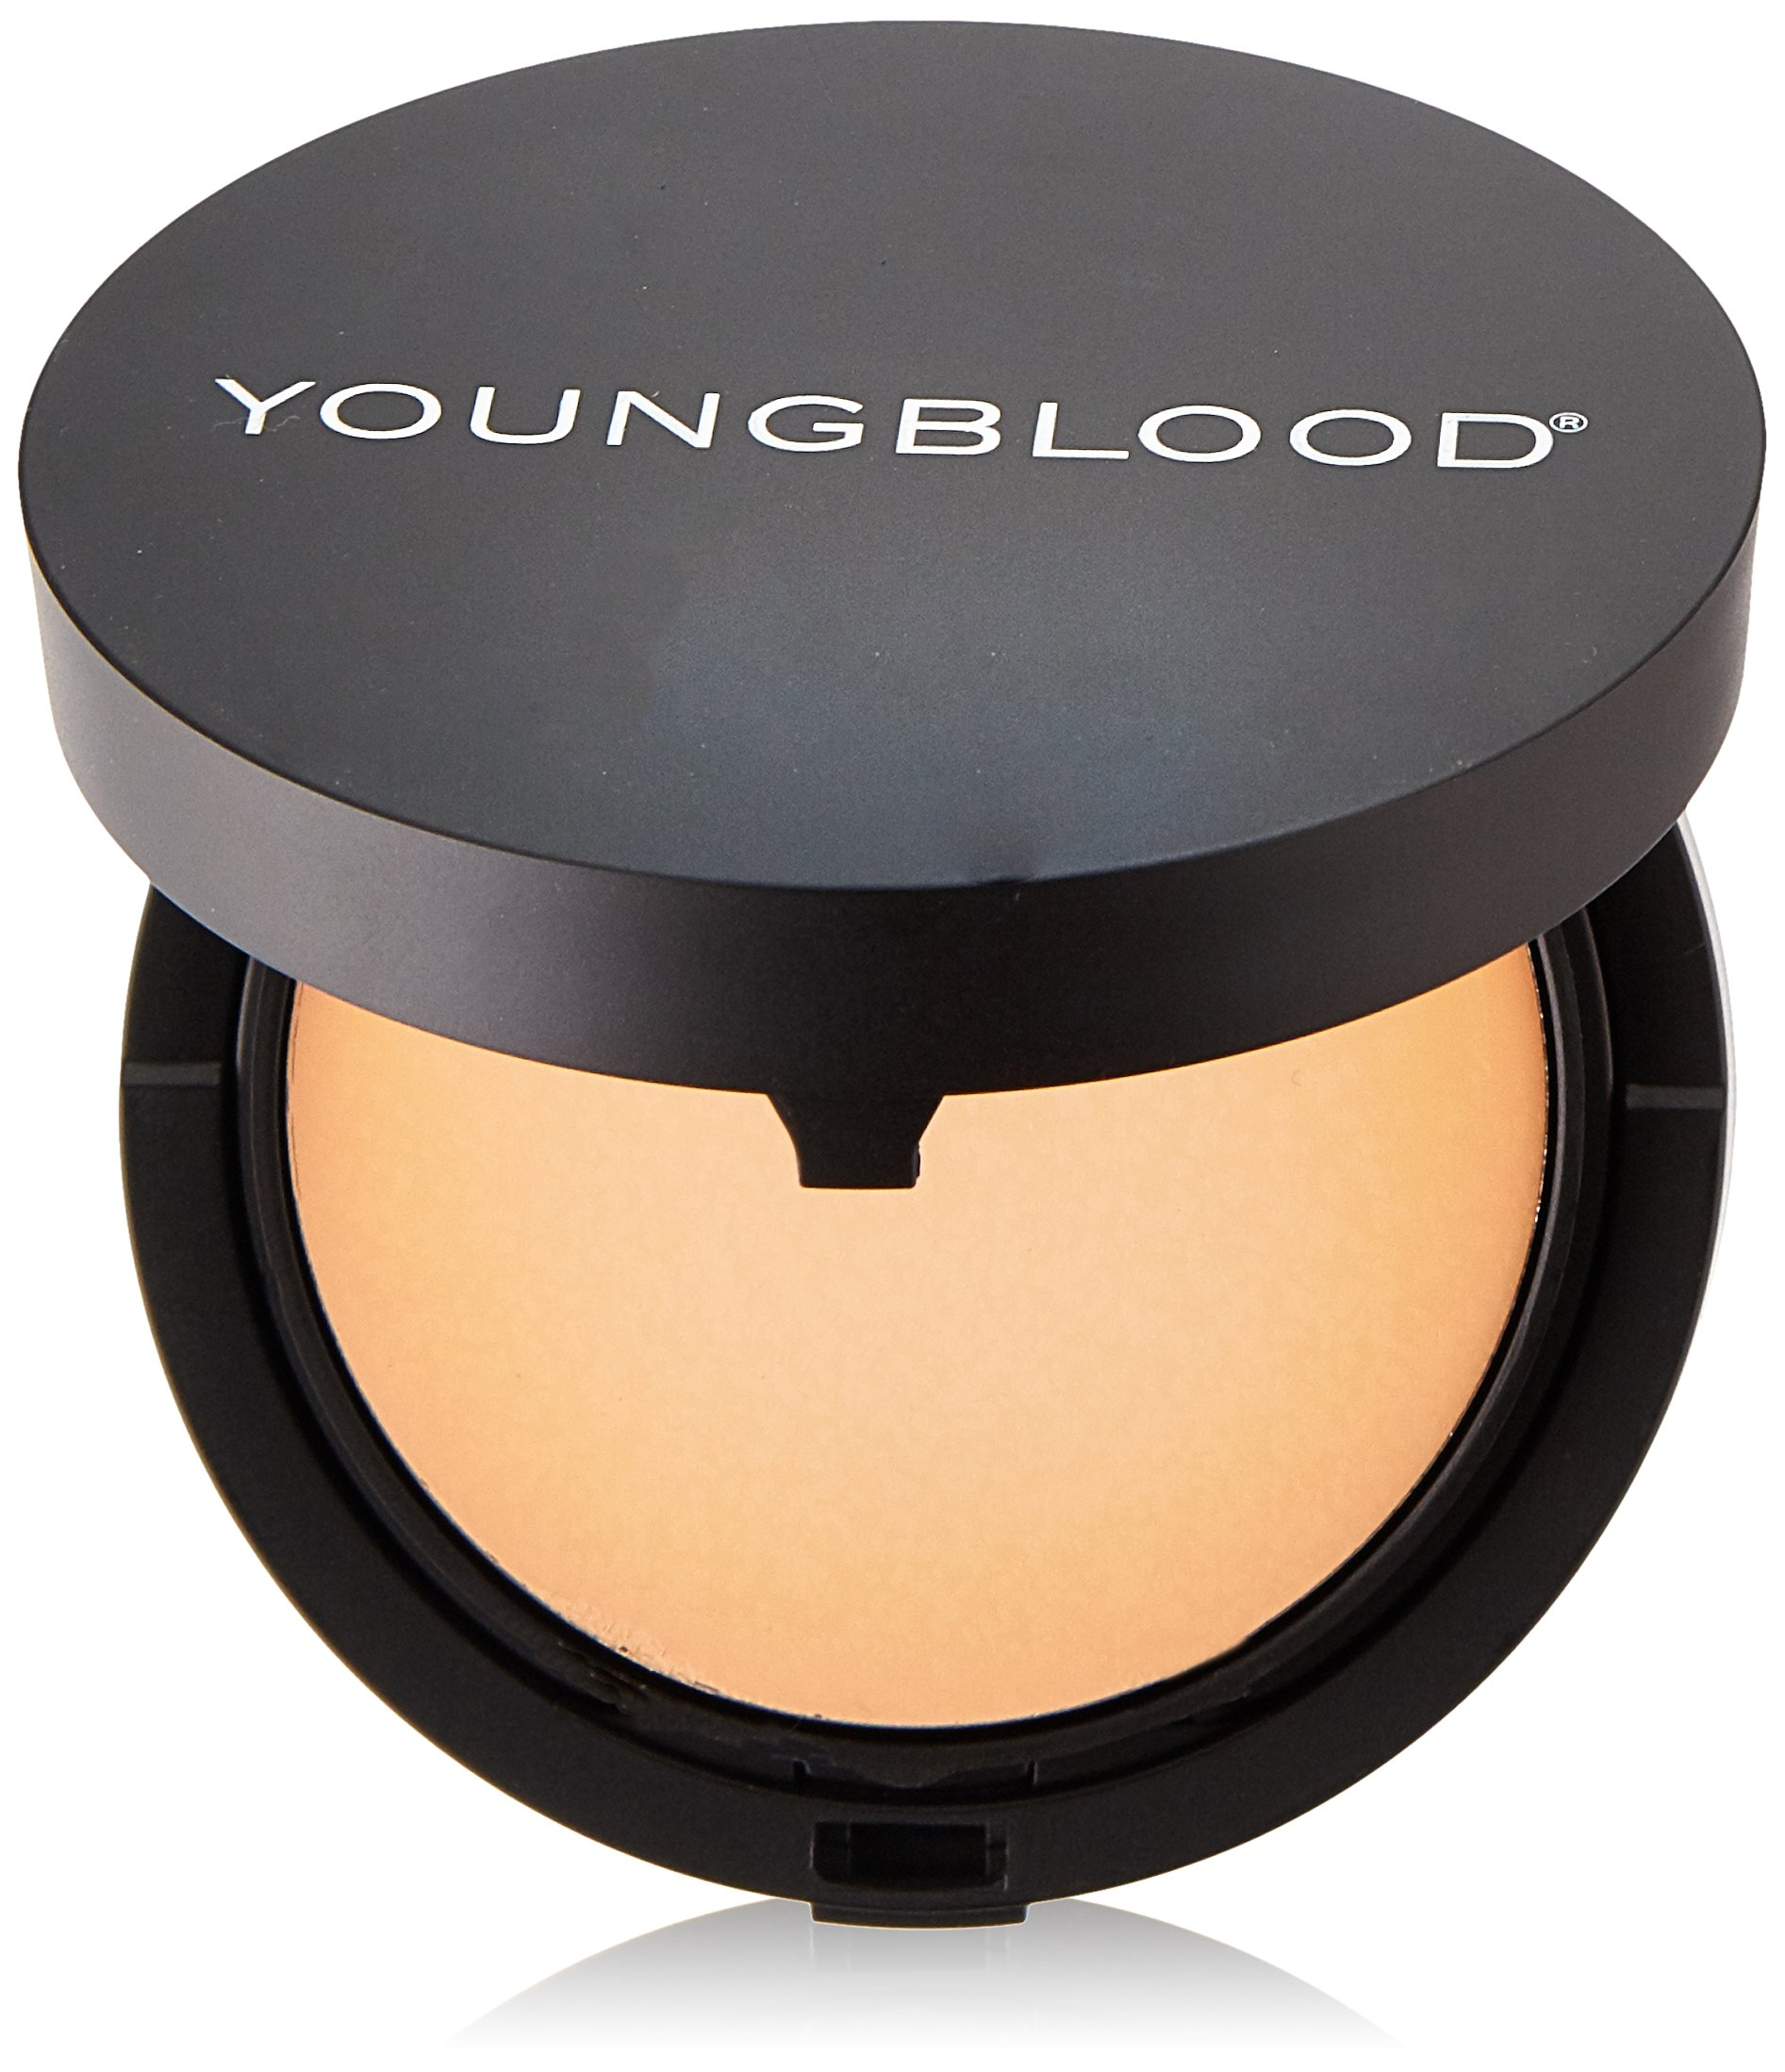 Youngblood Clean Luxury Cosmetics Mineral Radiance Crème Powder Foundation, Honey   Foundation for Oily Skin Rosacea Dry Matte Shine-Free Pressed Compact Natural Mineral